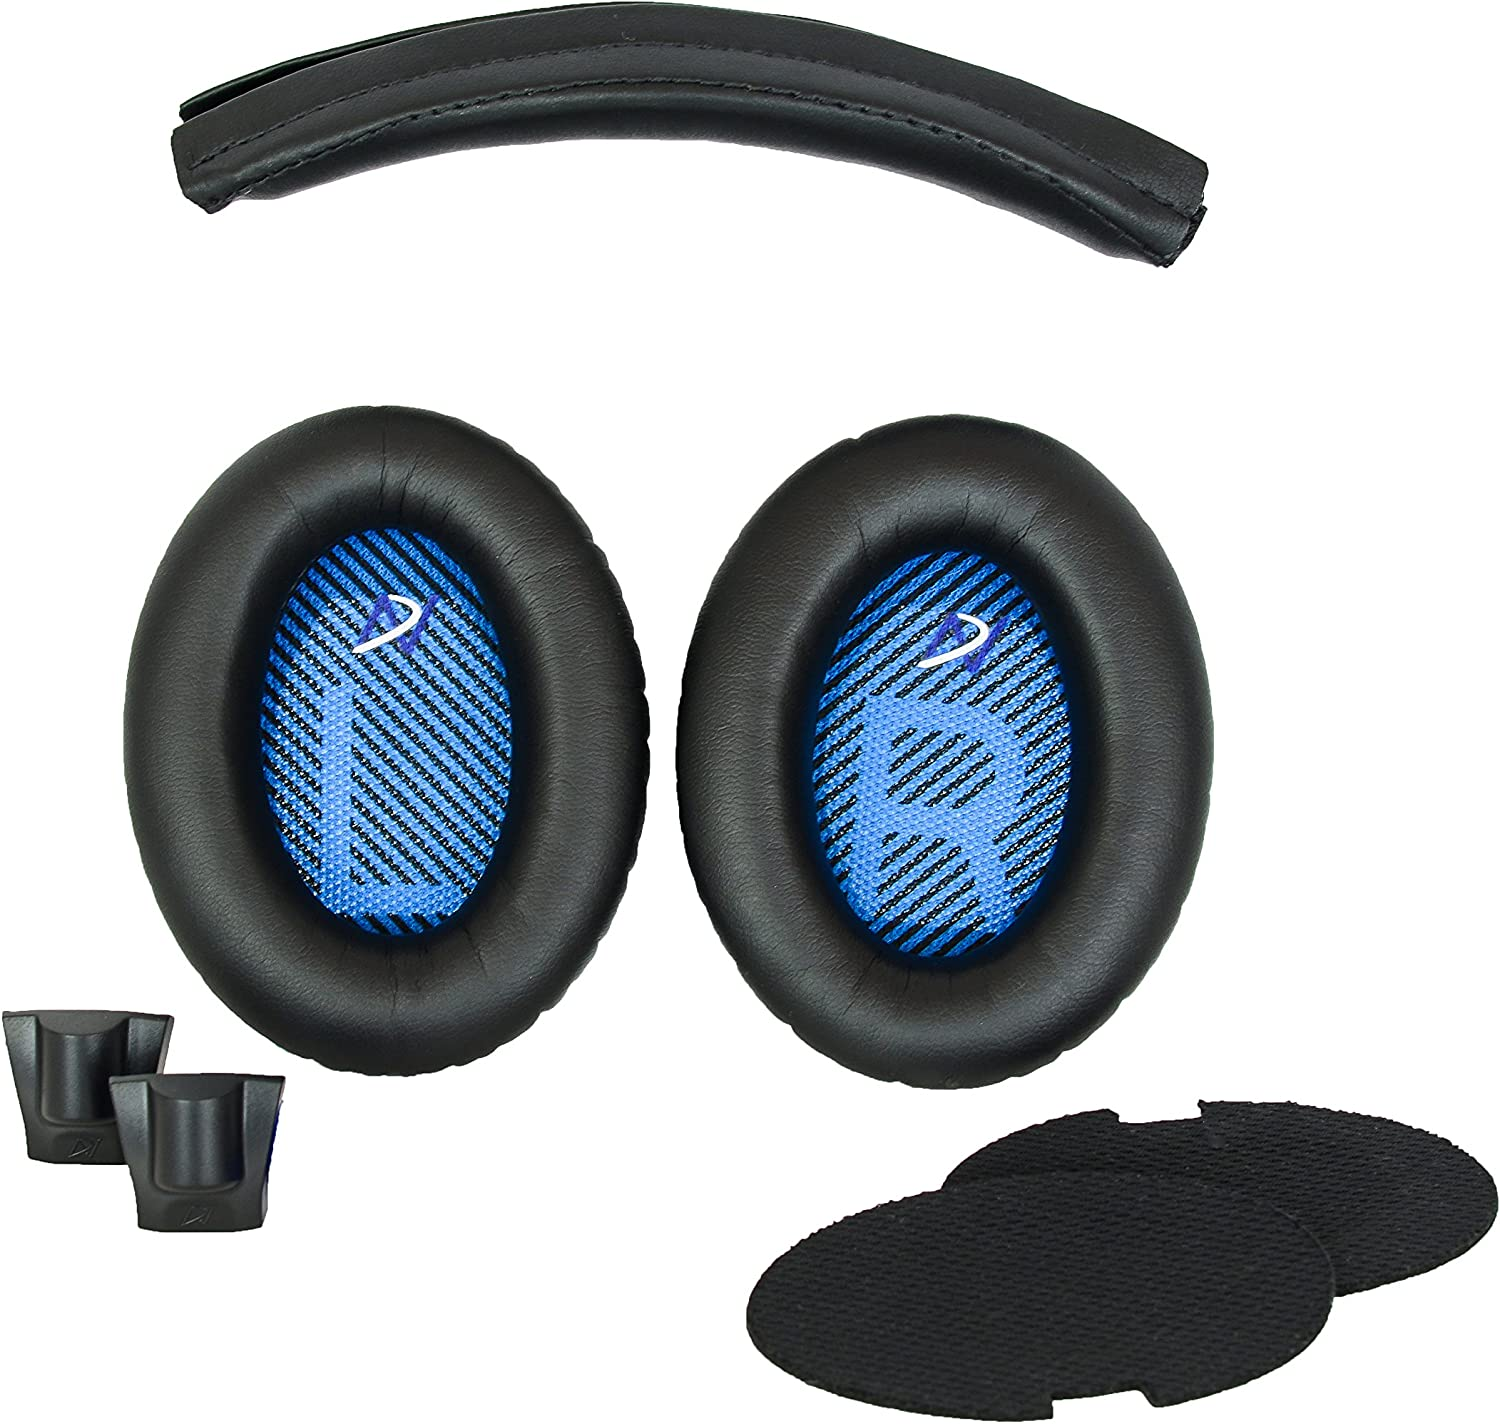 Replacement Ear Pads and Headband Cushion pad Compatible with Bose QuietComfort 15 (QC15) and QuietComfort 2 (QC2) Headphones